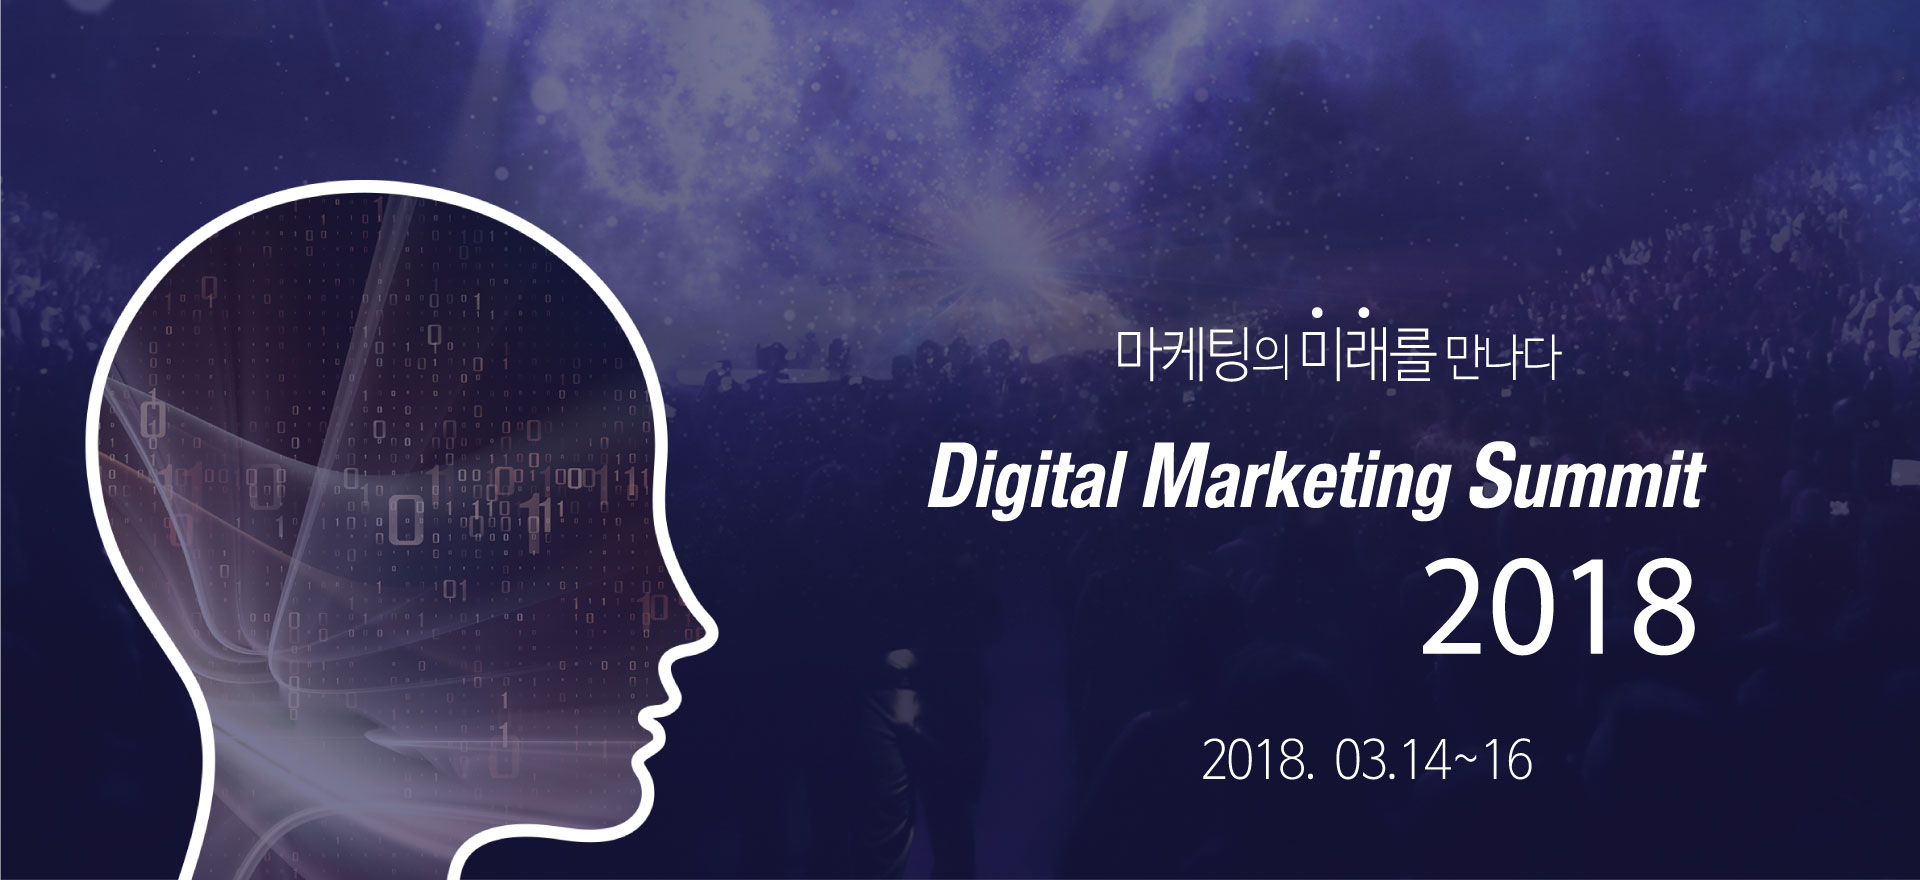 http://digitalmarketingkorea.com/wp-content/uploads/2016/10/홍보이미지홈페이지-1.jpg